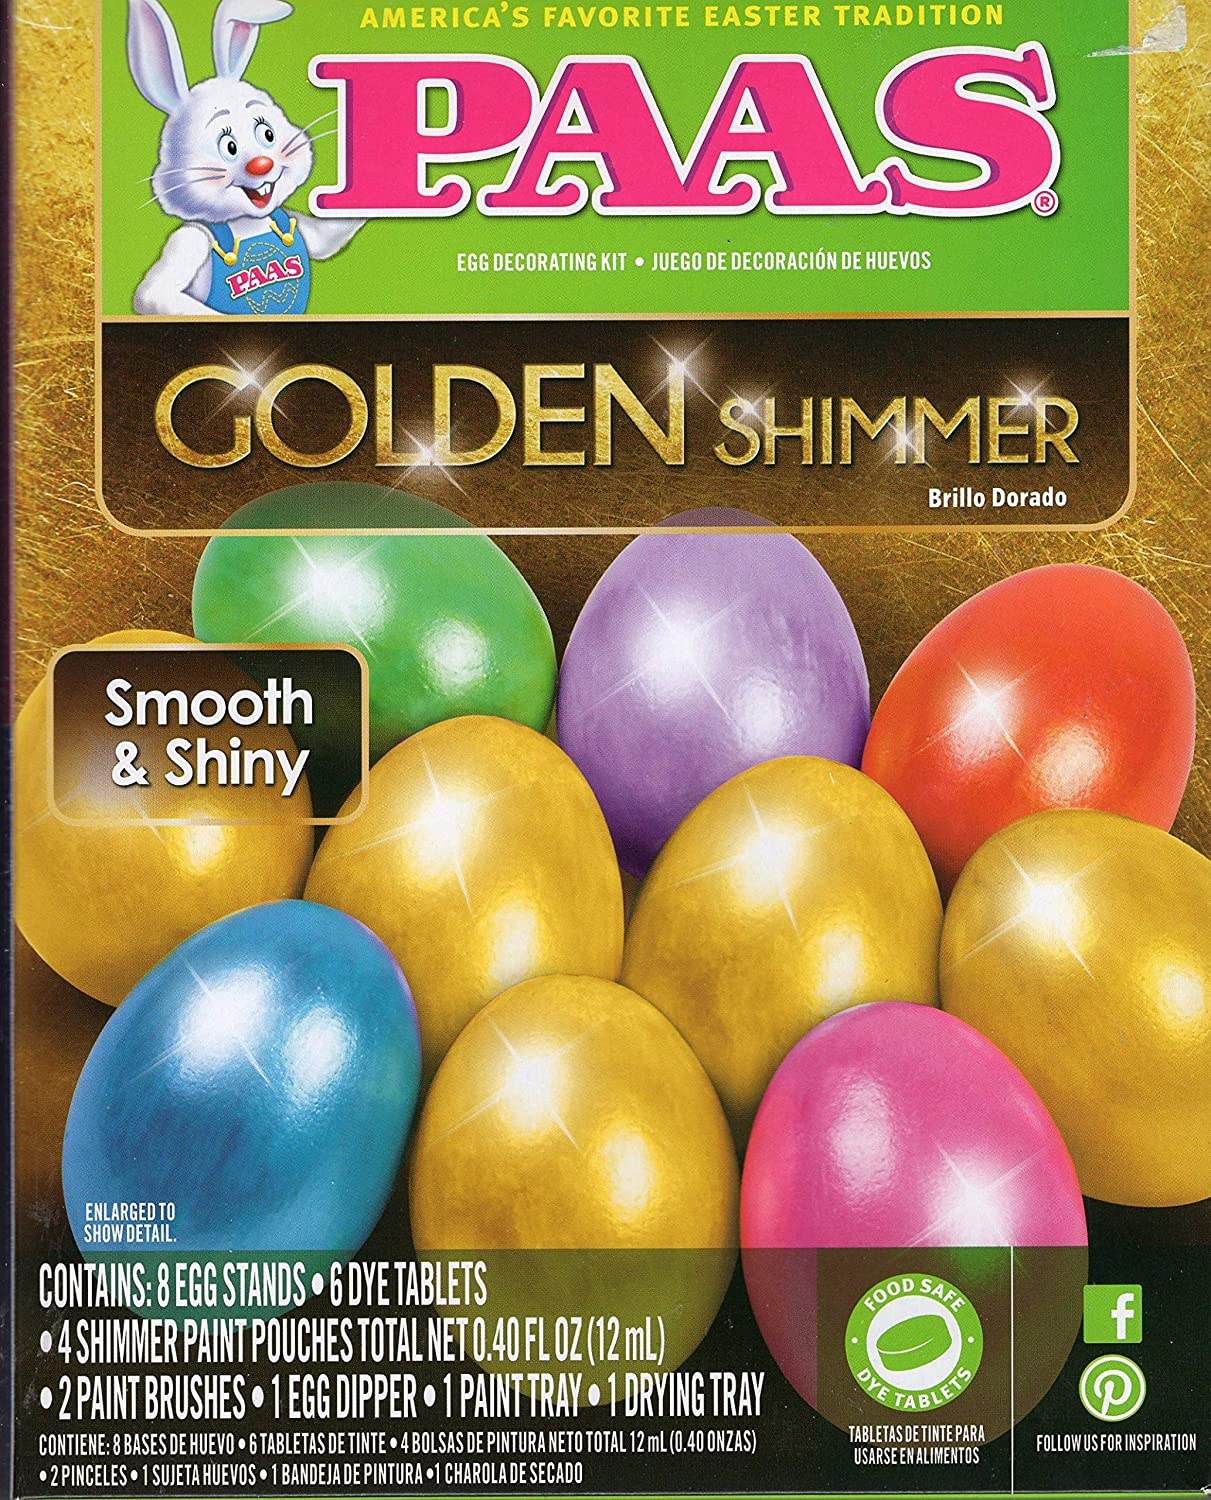 Amazon.com : Paas Golden Shimmer Egg Decorating Kit ...